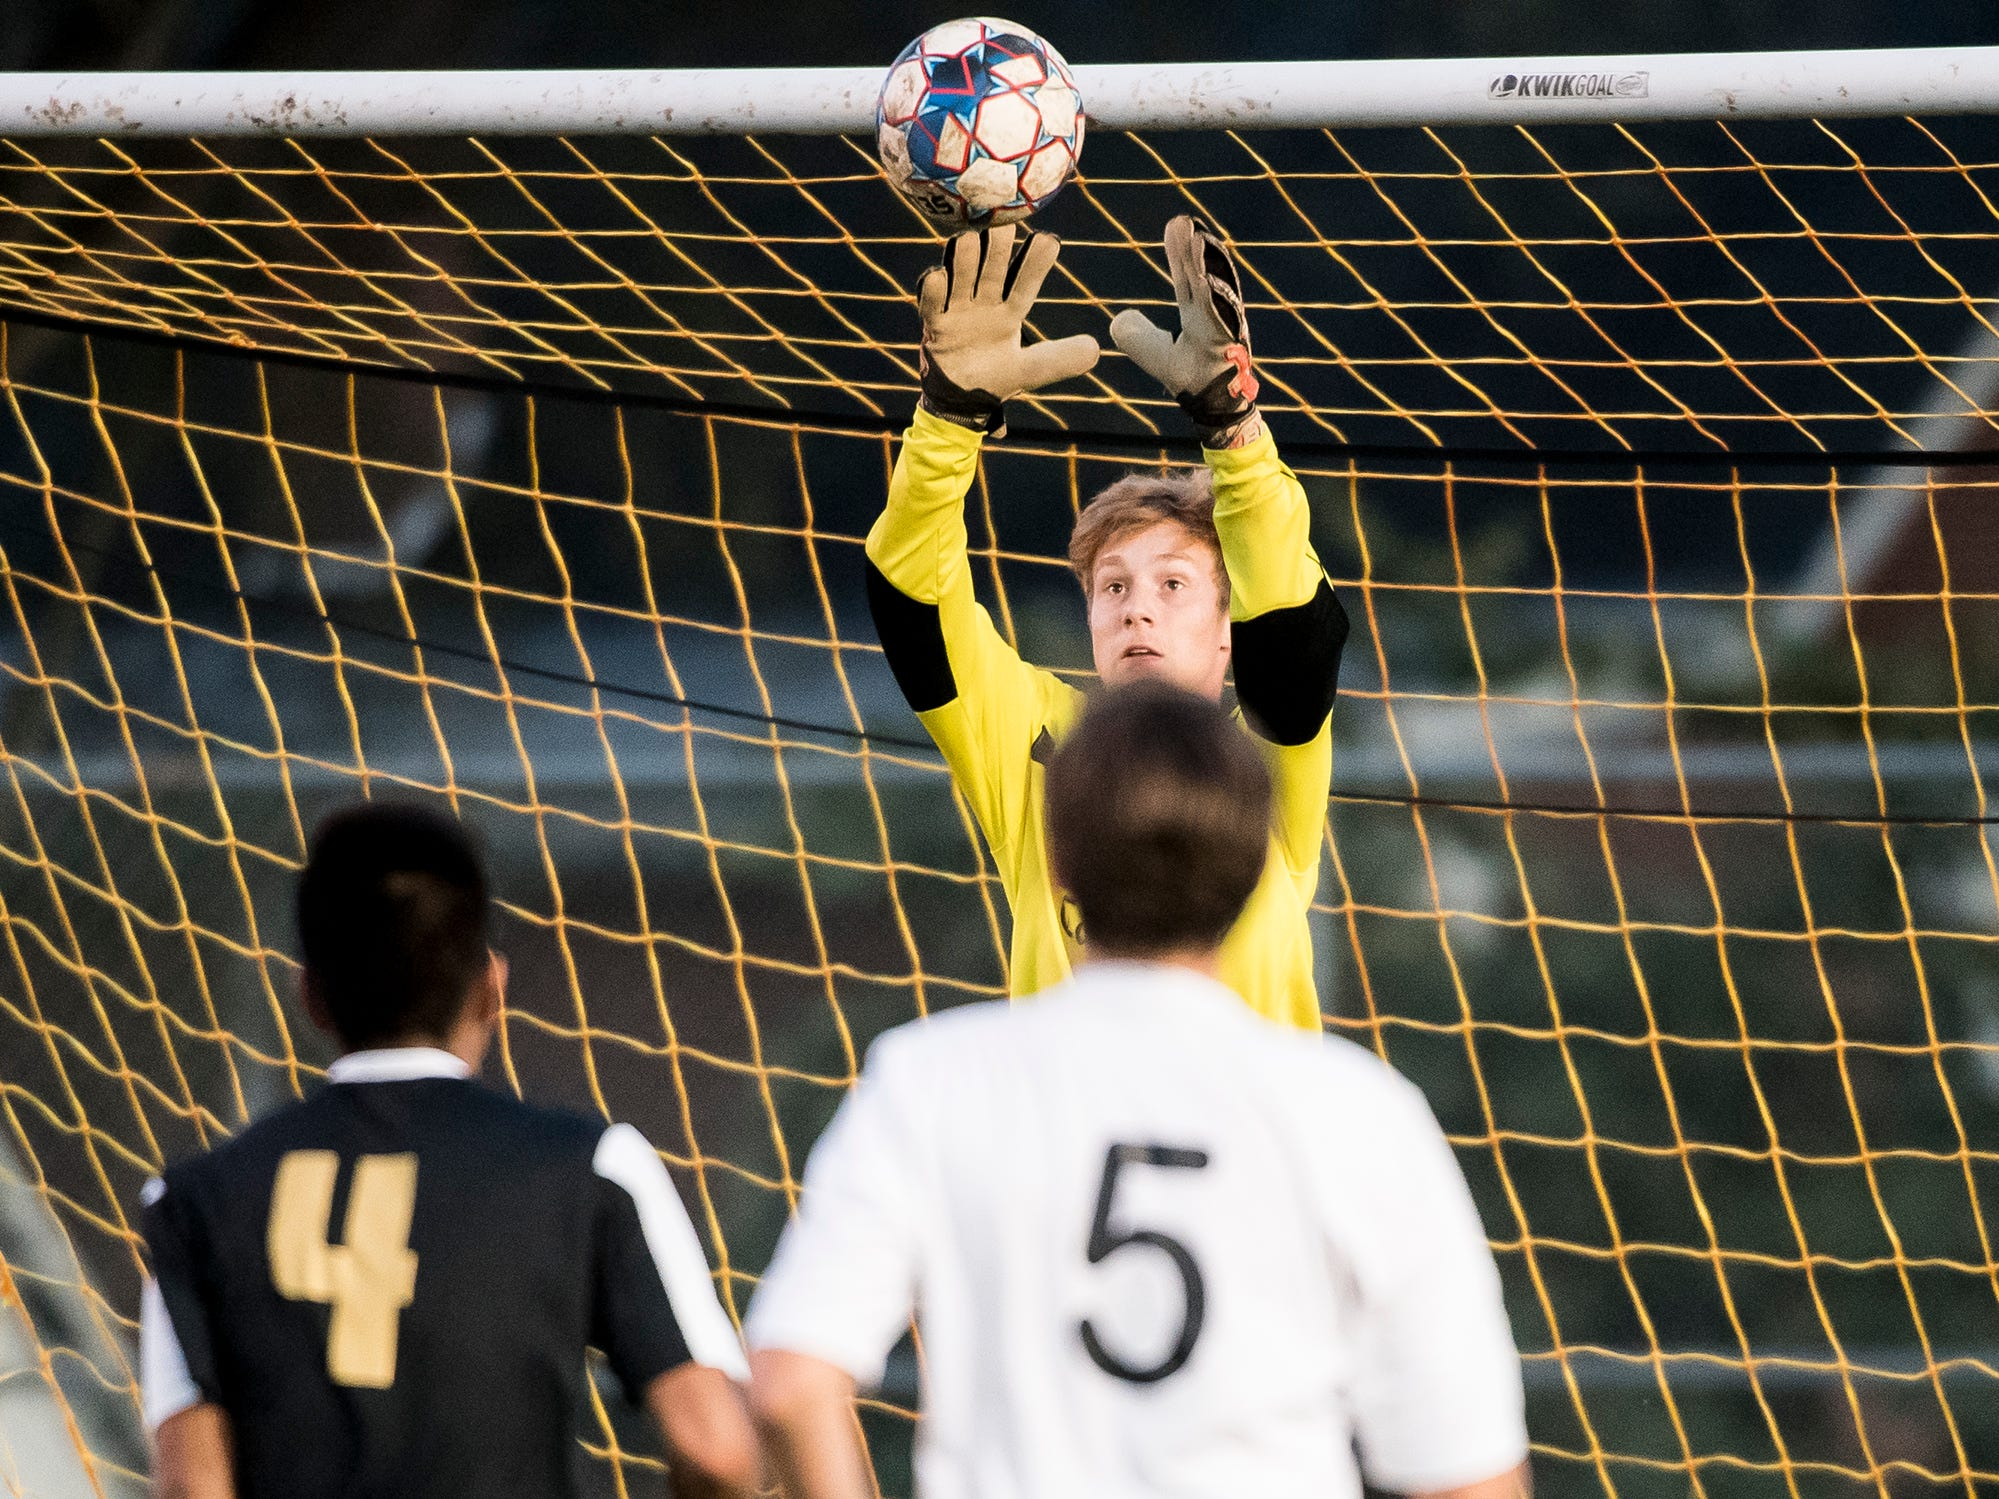 Delone Catholic goalkeeper Jacob Boccabella jumps up to grab the ball during a game against Biglerville on Wednesday, October 3, 2018. The Squires fell 3-0.